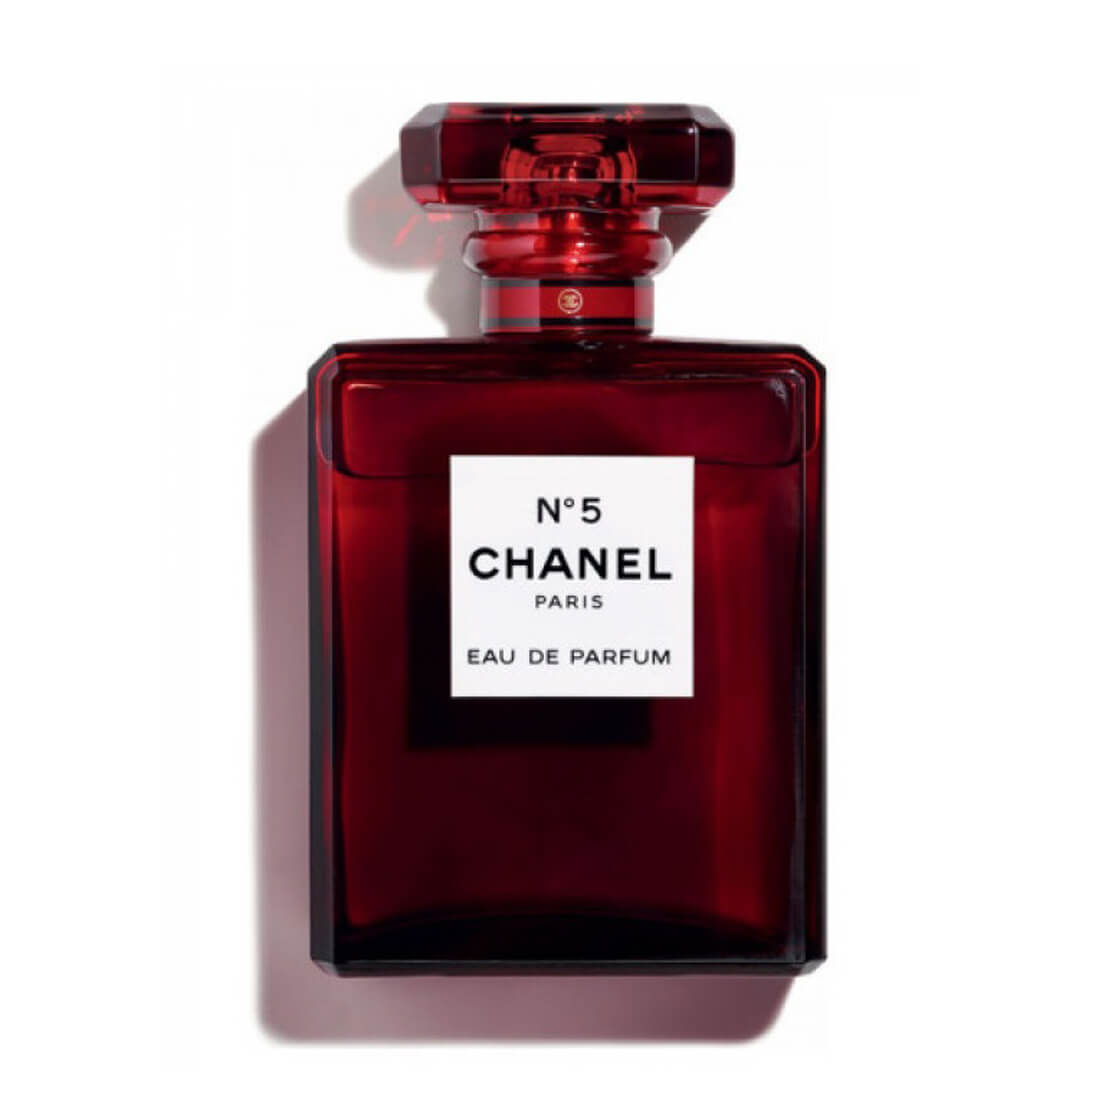 Chanel N°5 Red Limited Edition Eau De Perfume 100ml